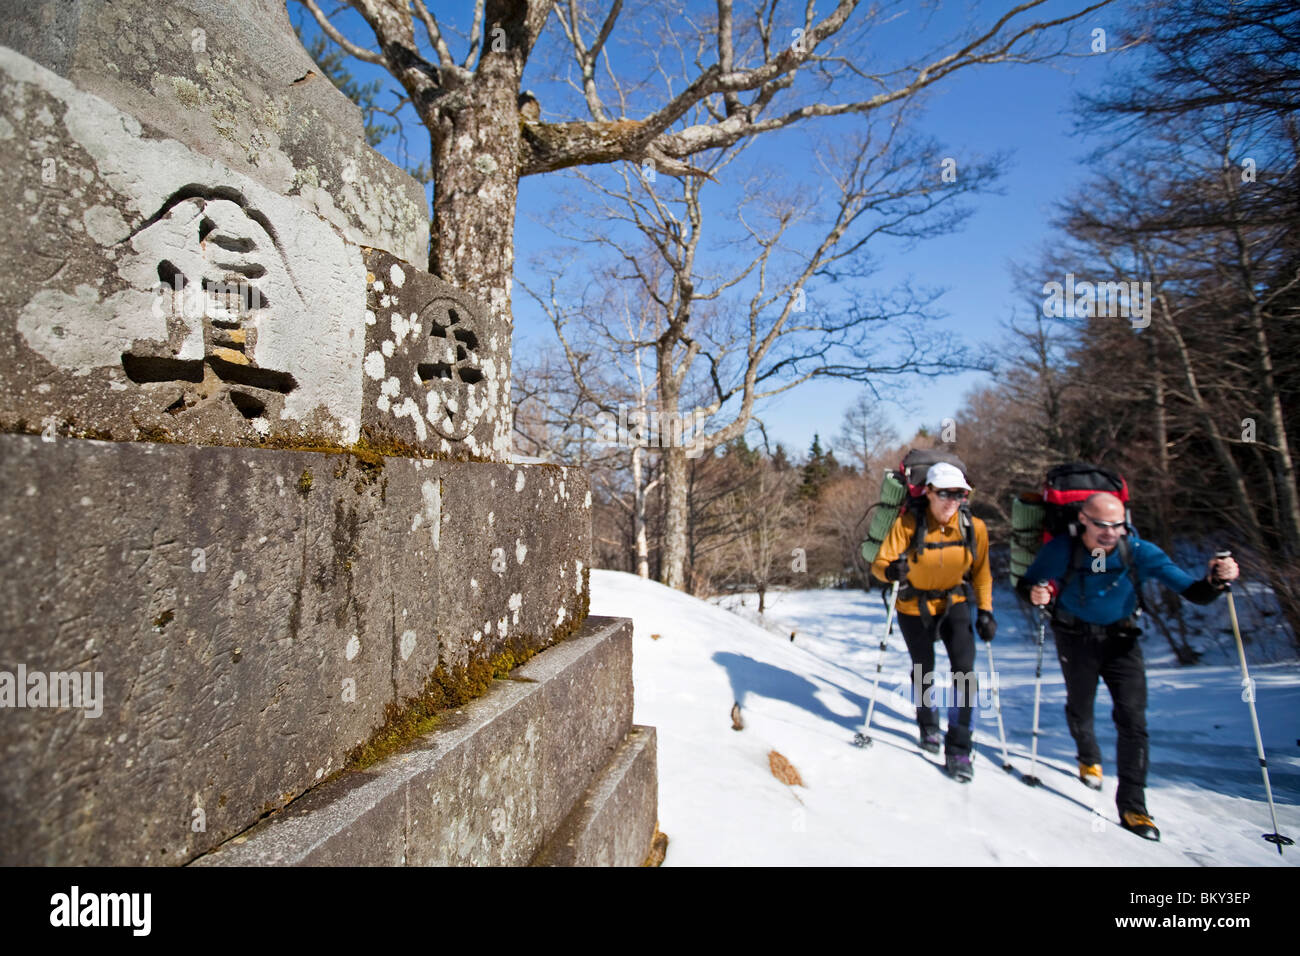 Two people are hiking on a trail next to a wall with Japanese characters on it in Mount Fuji National Park, Honshu, - Stock Image